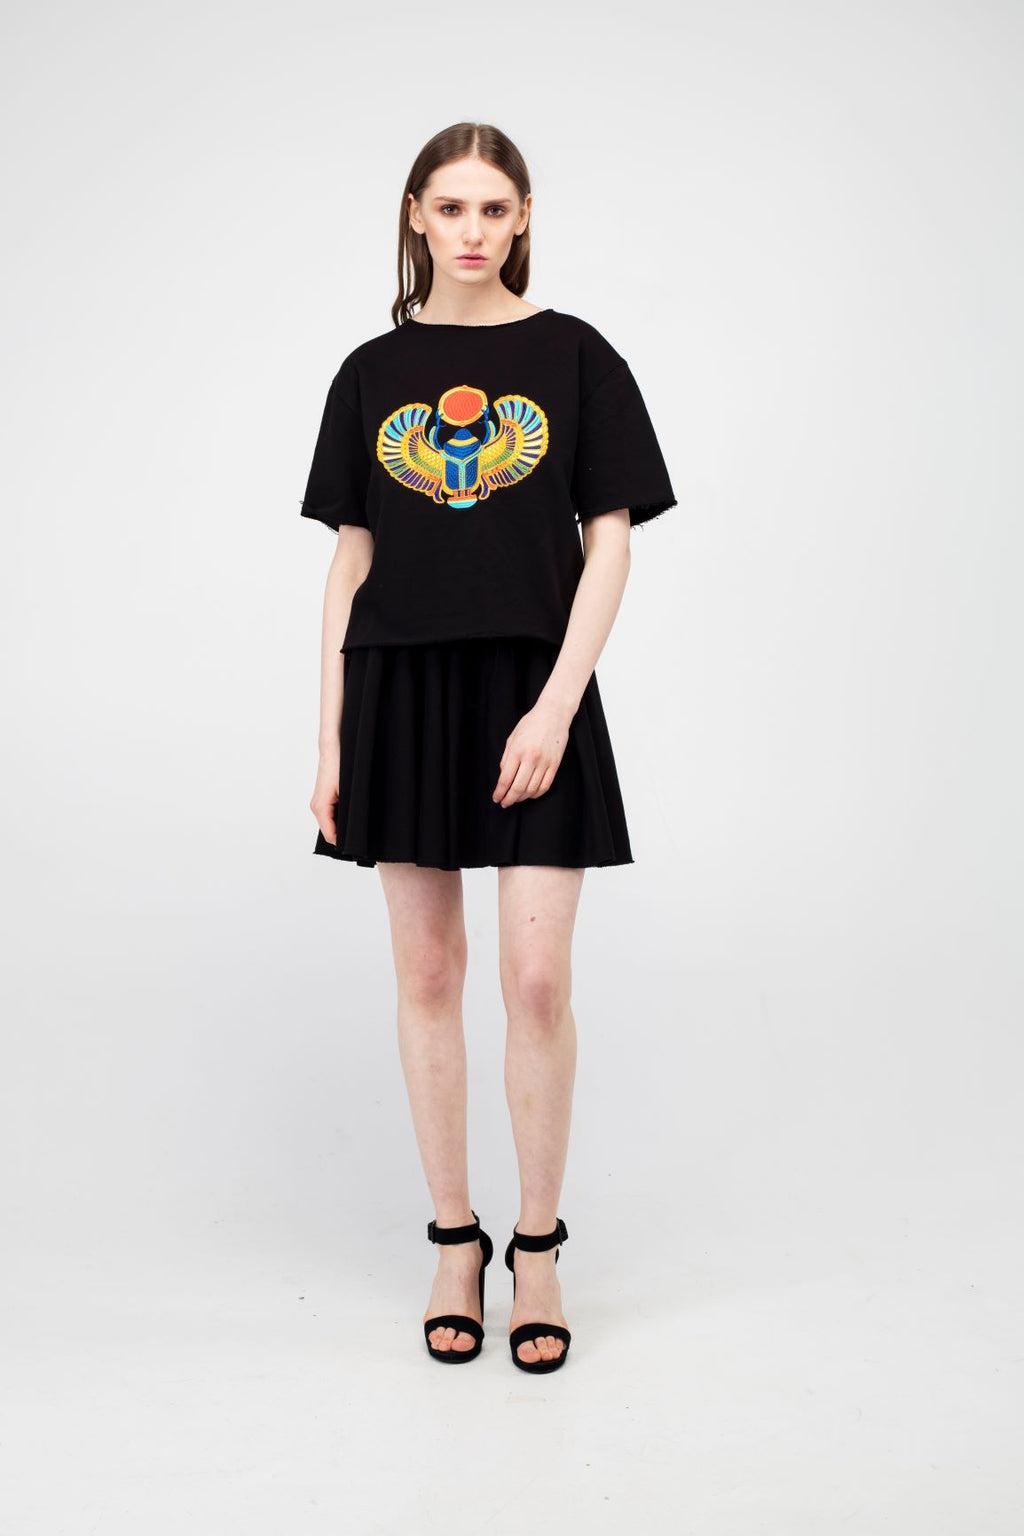 Black Embroidered Winged Beetle Girls Set - LAZY FRANCIS - Shop in store at 406 Kings Road, Chelsea, London or shop online at www.lazyfrancis.com